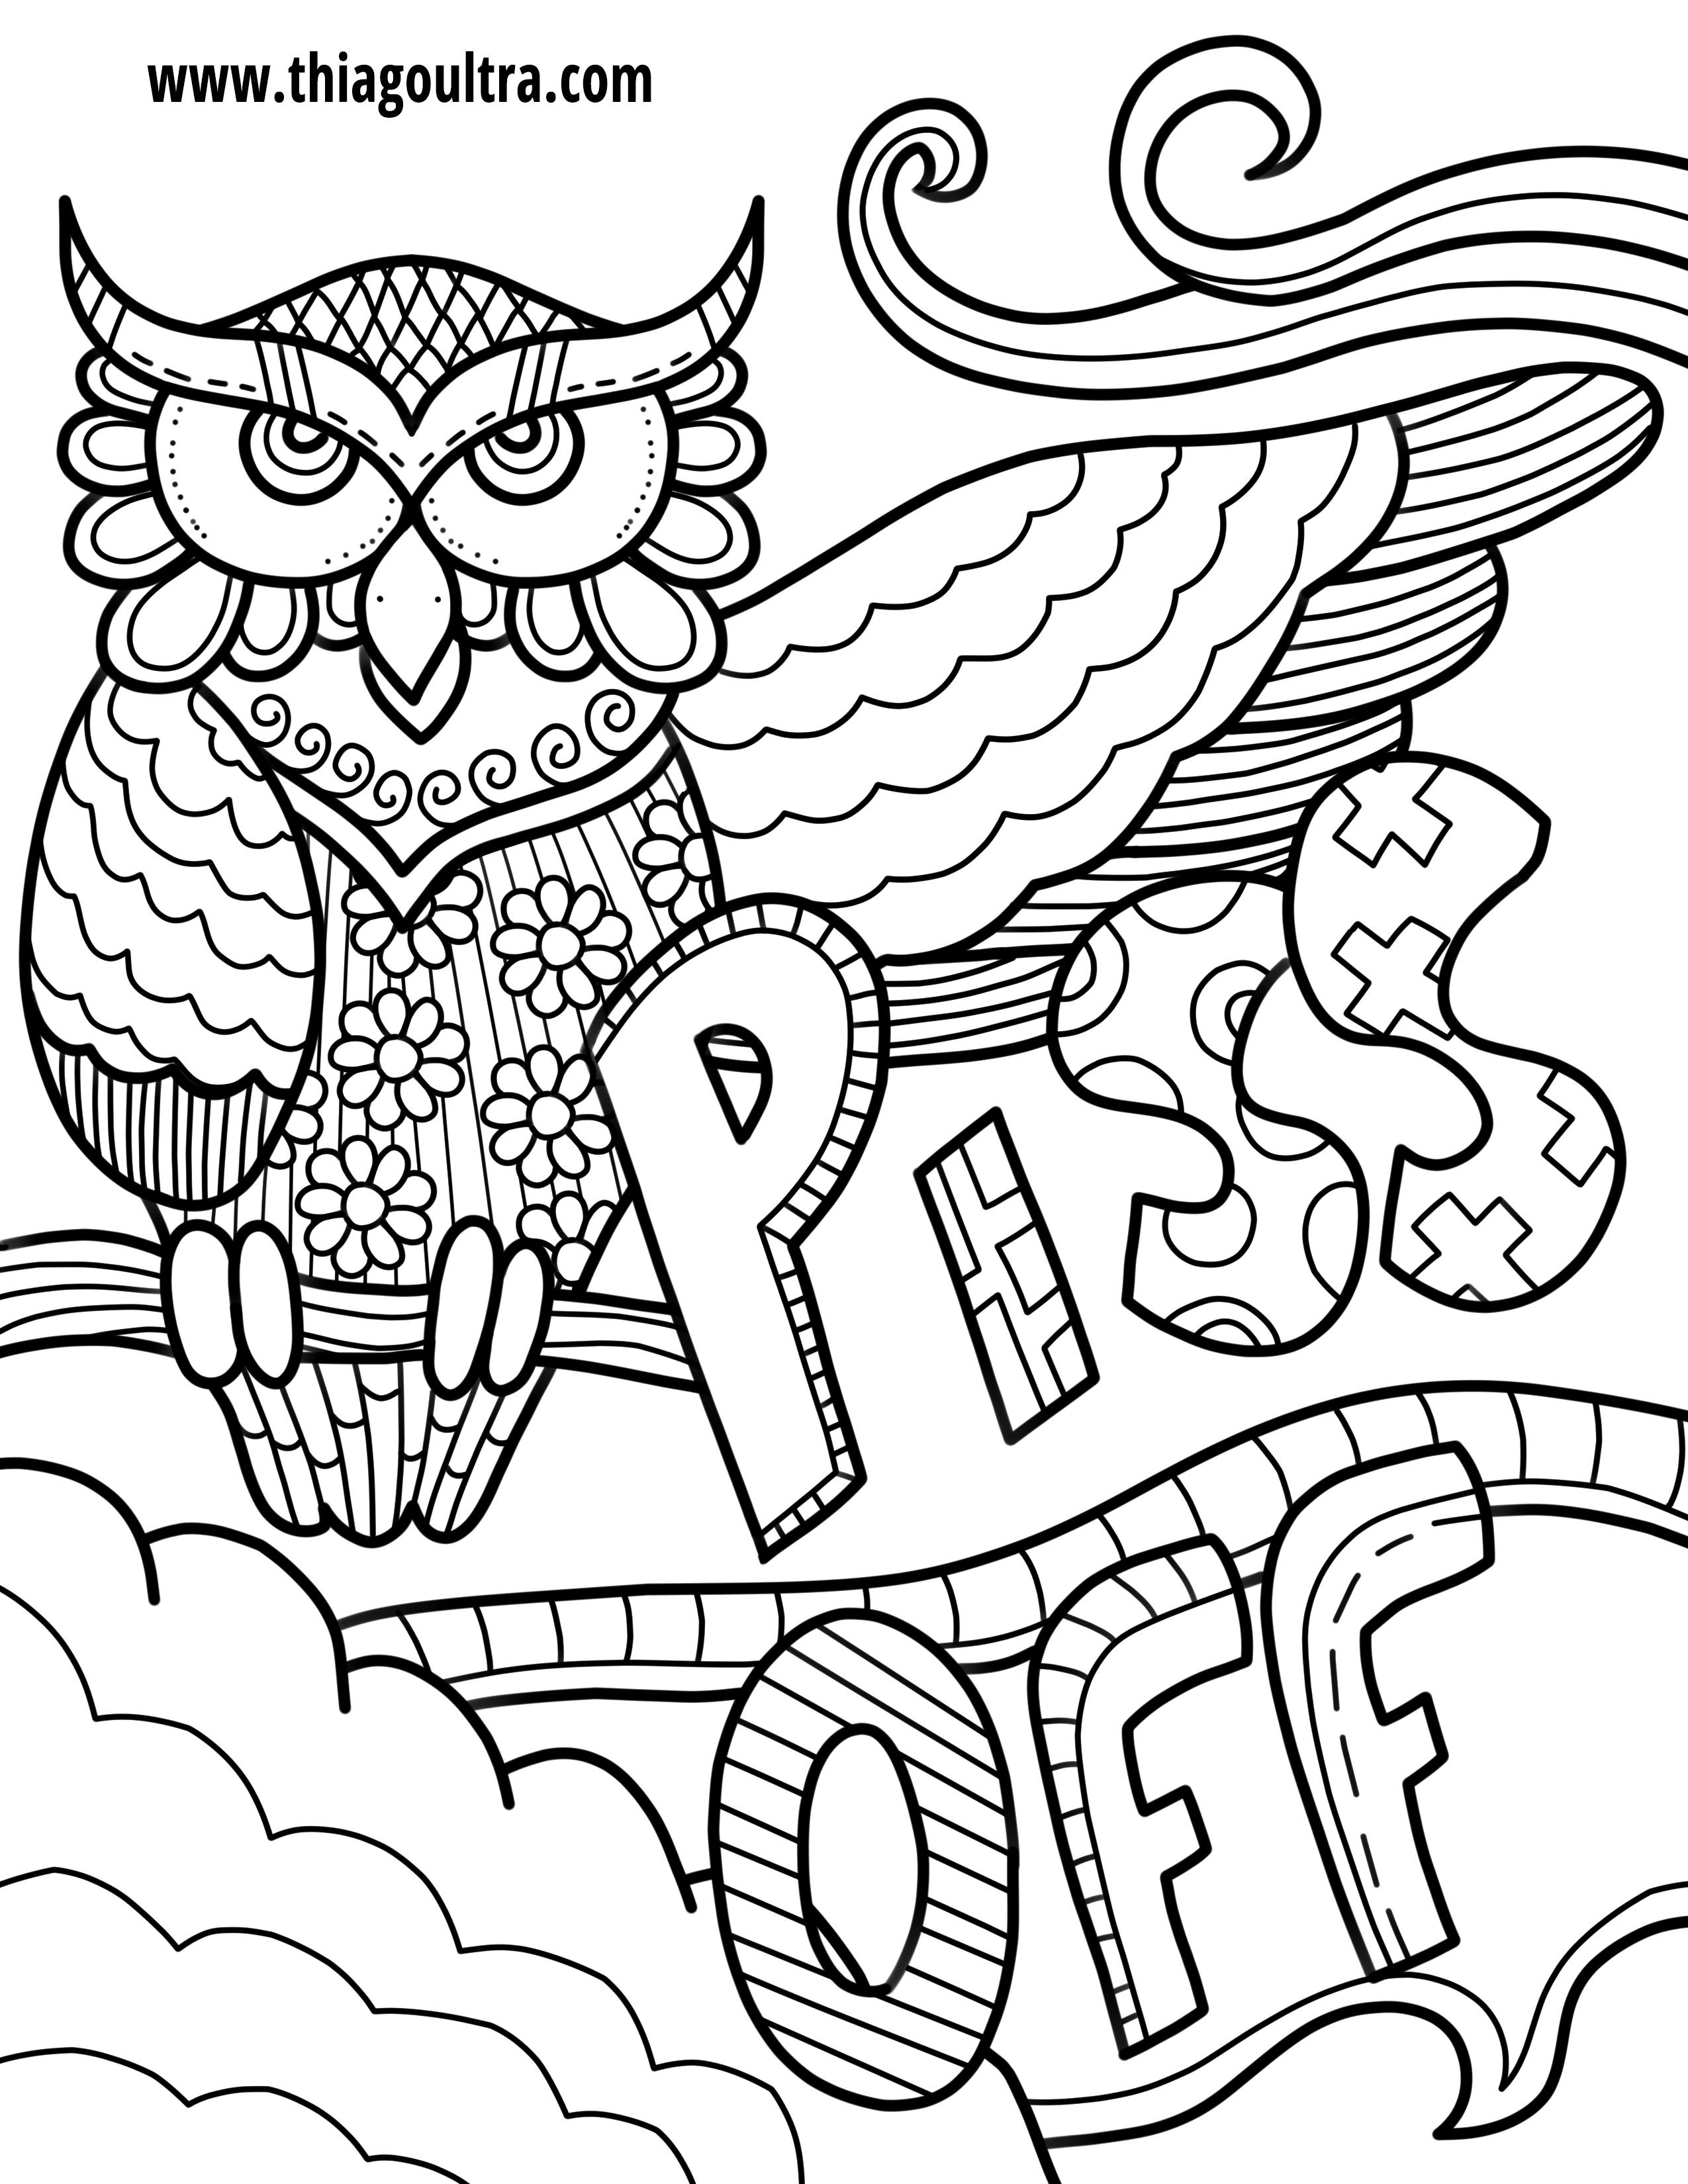 Unique Free Printable Coloring Pages For Adults Only Swear Words - Free Printable Coloring Pages For Adults Swear Words